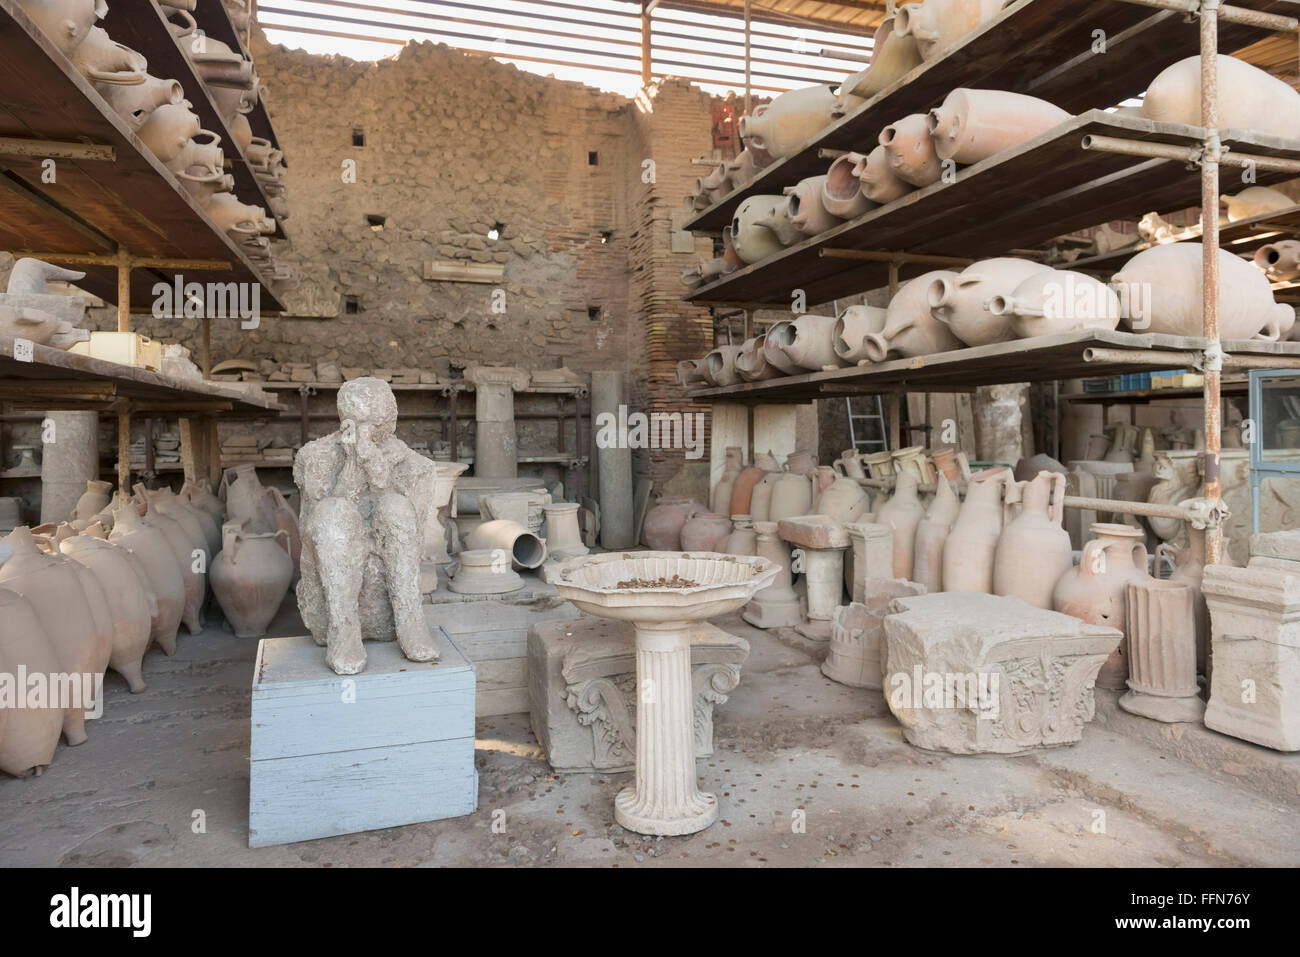 Earthenware pots and the cast of a person recovered from the ruins in Pompeii, Italy, Europe - Stock Image